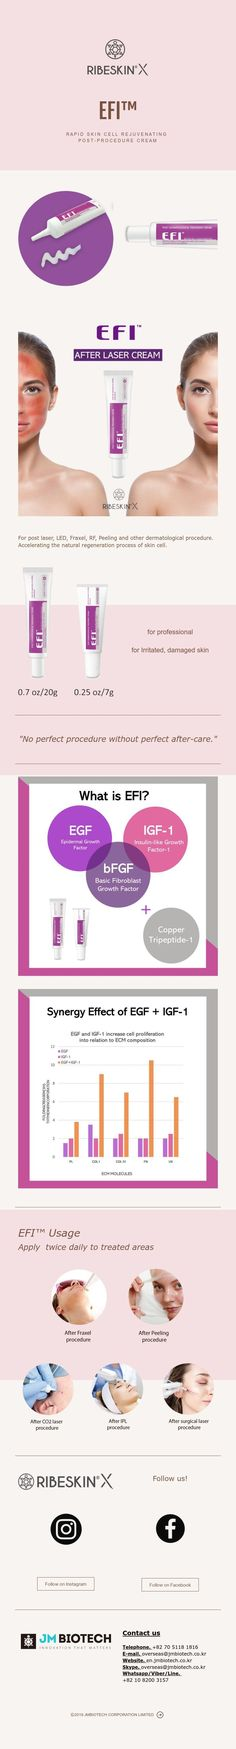 [JMBLetter-July] Everyone Finds it Incredible, EFI™ The Incredibles, Live